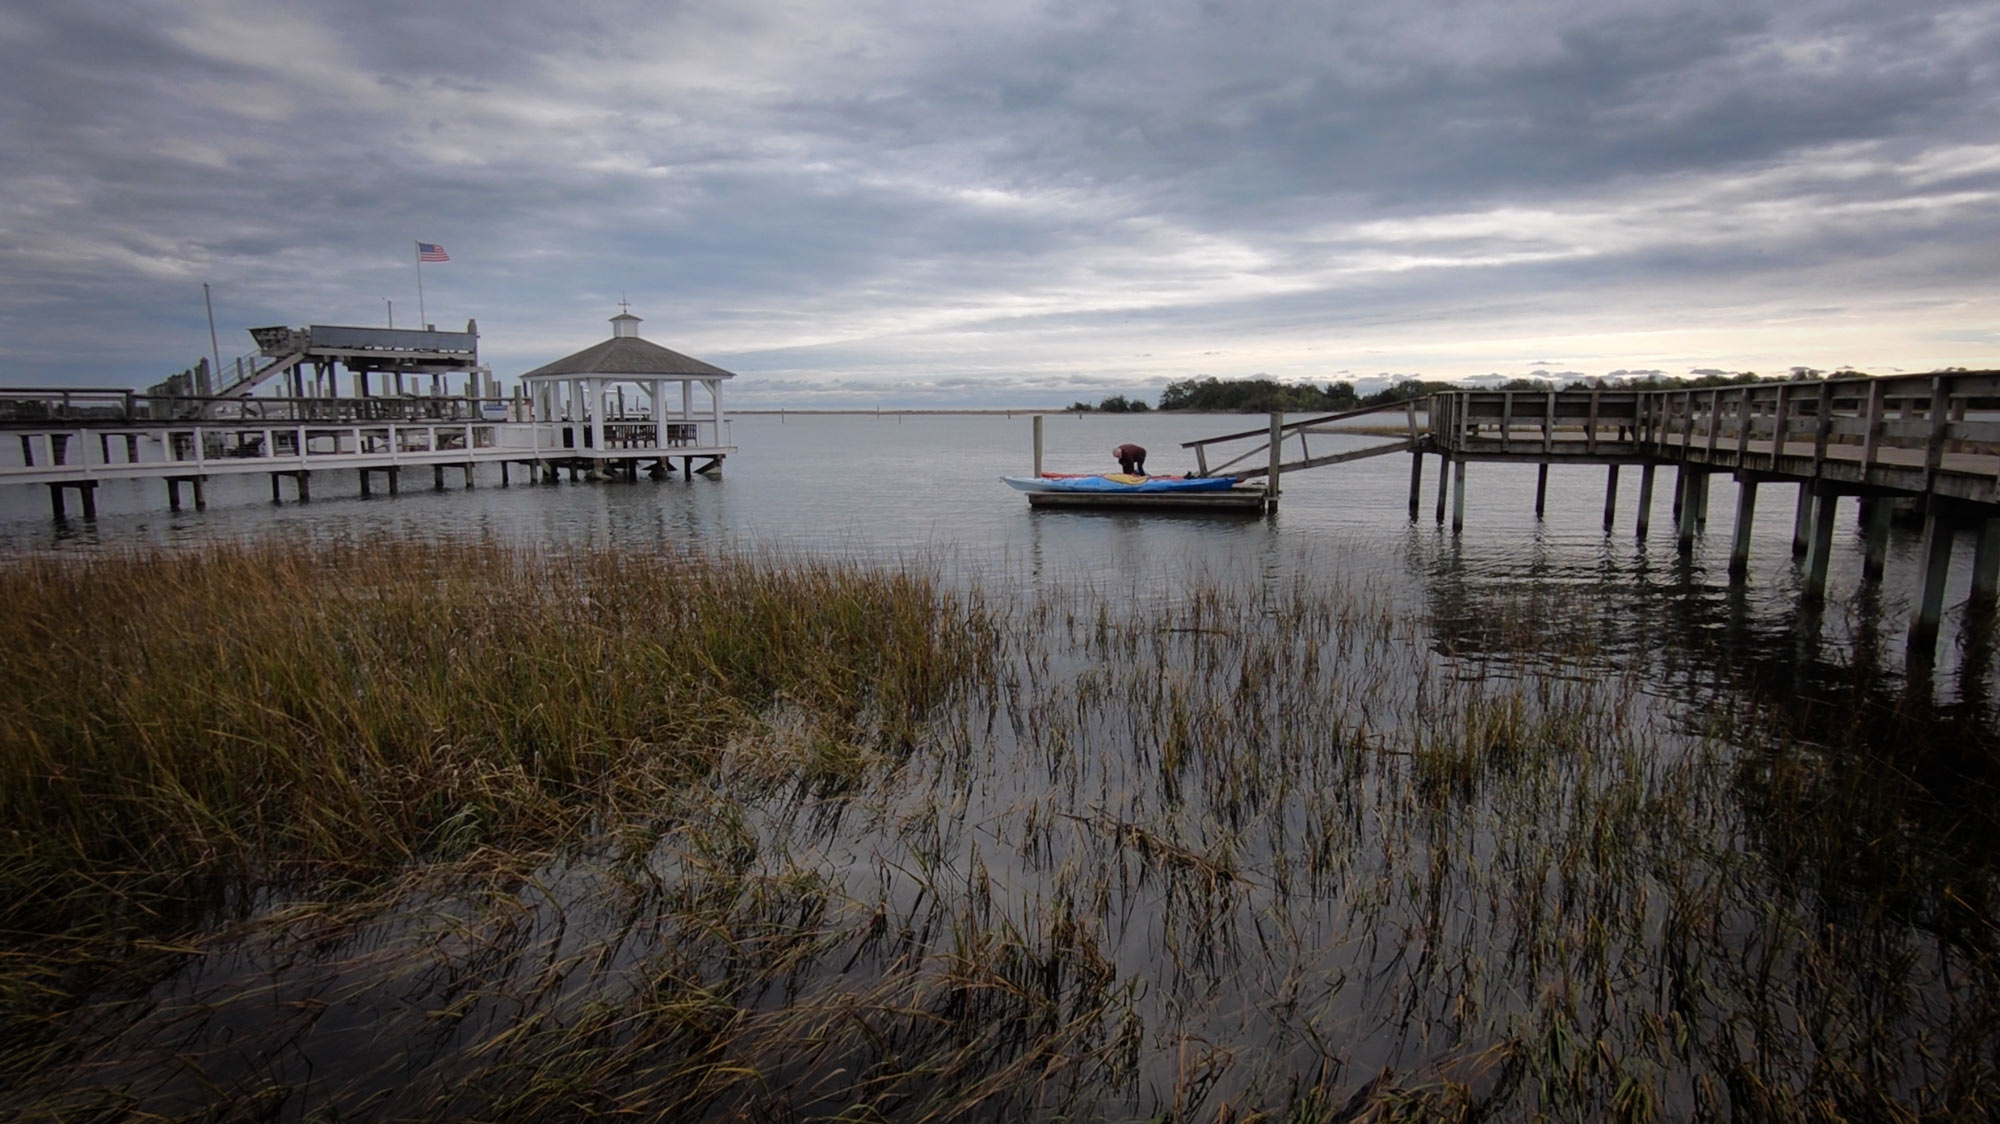 Trails End Public Boat Ramp for Masonboro Island Access, North Carolina